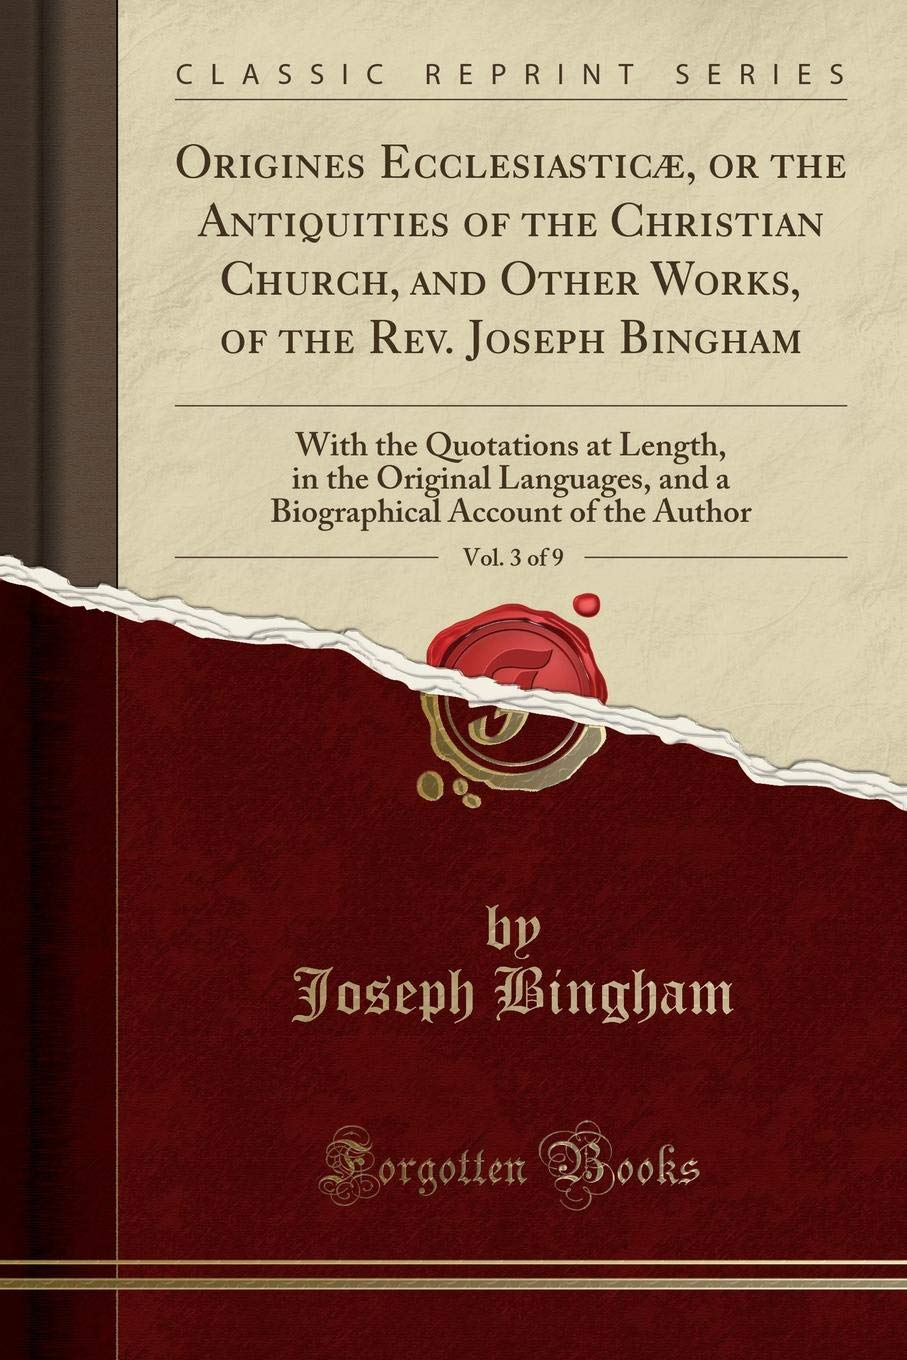 Read Online Origines Ecclesiasticæ, or the Antiquities of the Christian Church, and Other Works, of the Rev. Joseph Bingham, Vol. 3 of 9: With the Quotations at ... Account of the Author (Classic Reprint) ebook